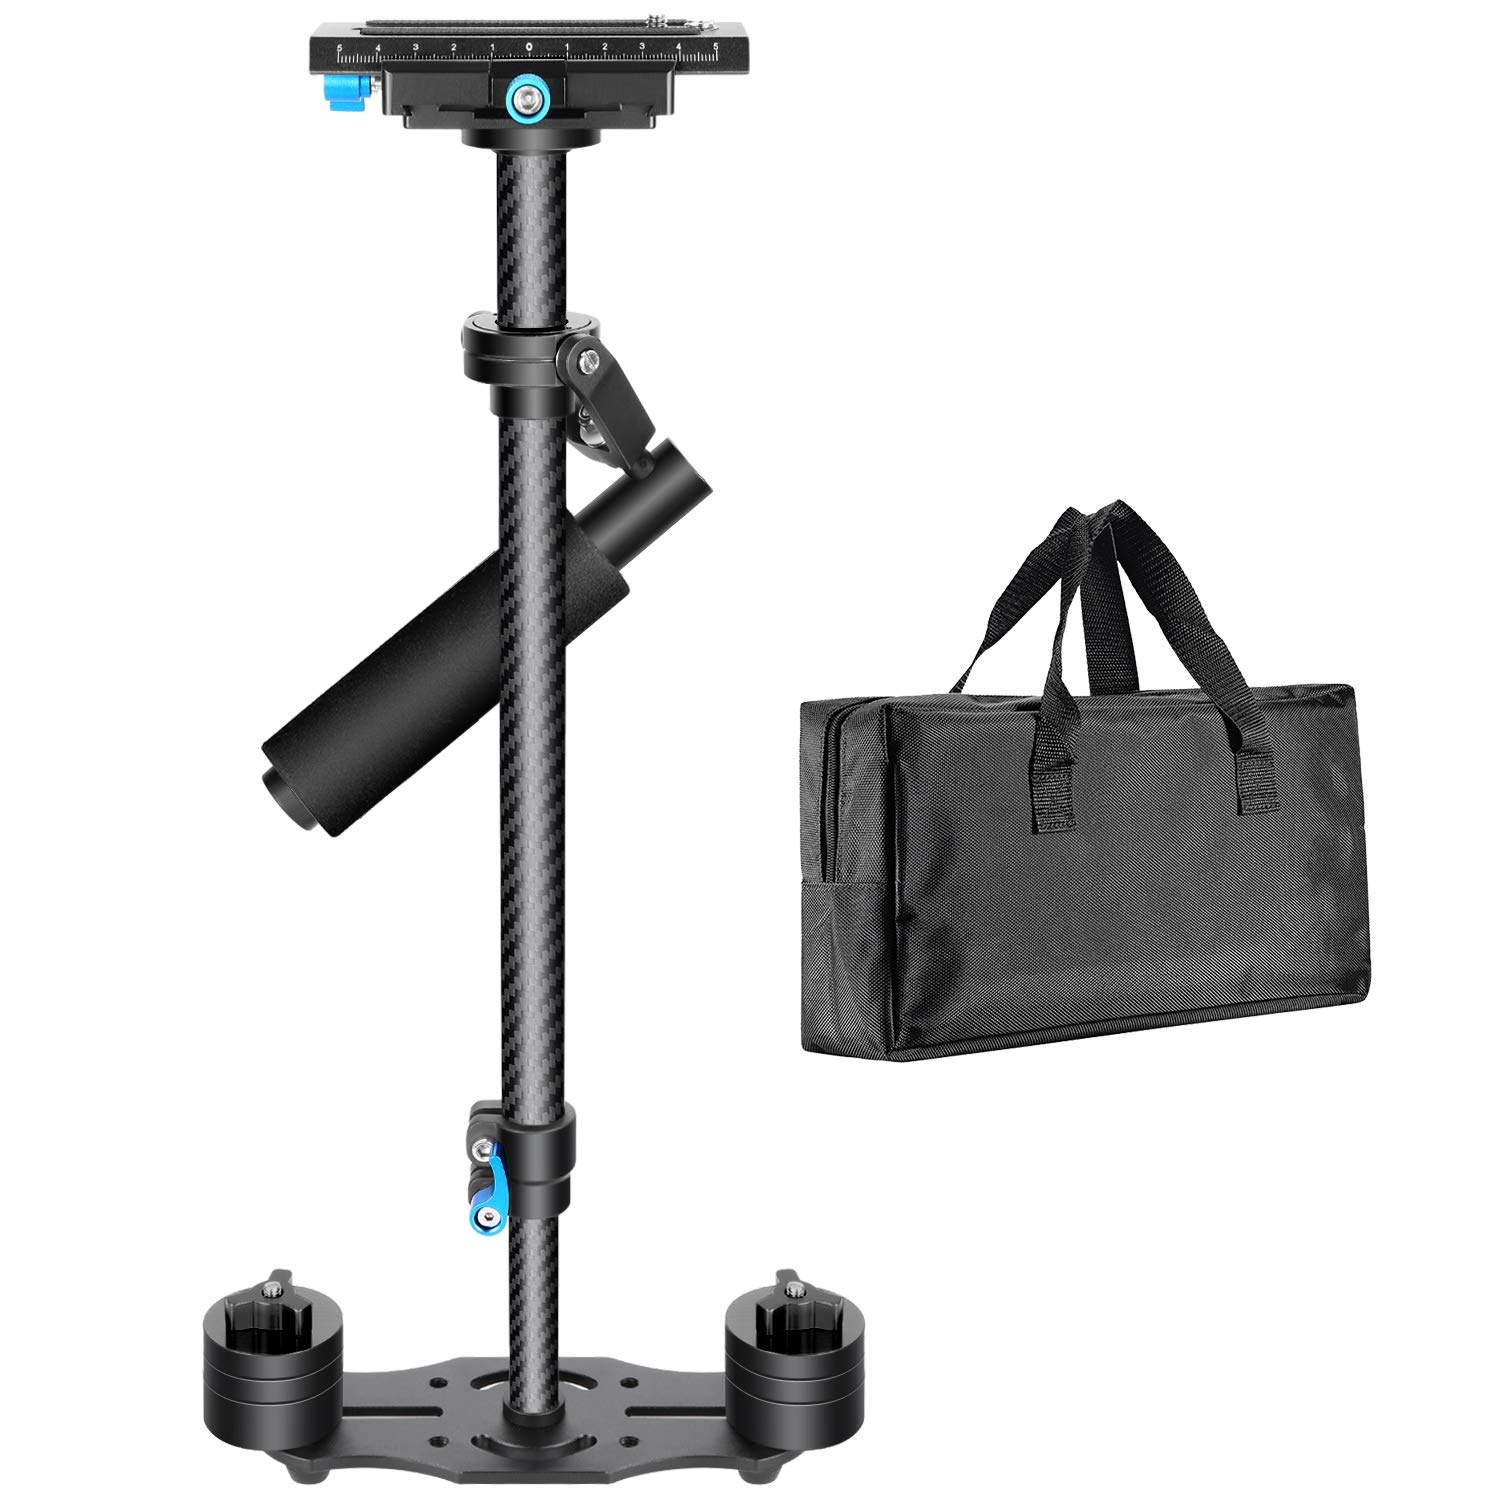 Black Neewer Carbon Fiber 24 inches//60 centimeters Handheld Stabilizer with 1//4 3//8 inch Screw Quick Shoe Plate for Canon Nikon Sony and Other DSLR Camera Video DV up to 6.6 pounds//3 kilograms